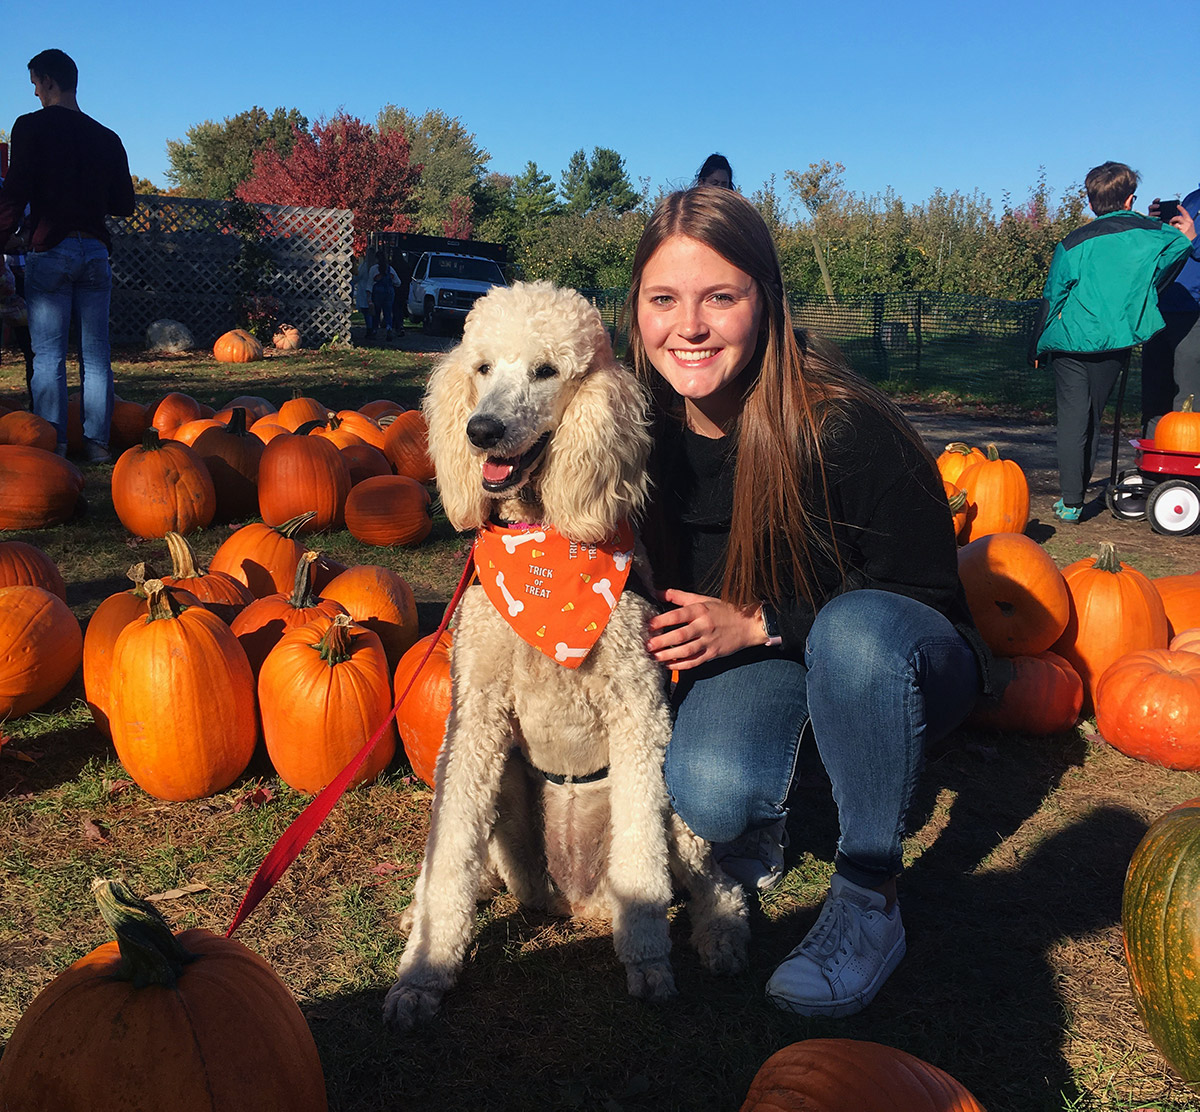 Kate poses with an Illini Service Dog surrounded by pumpkins at Curtis Orchard